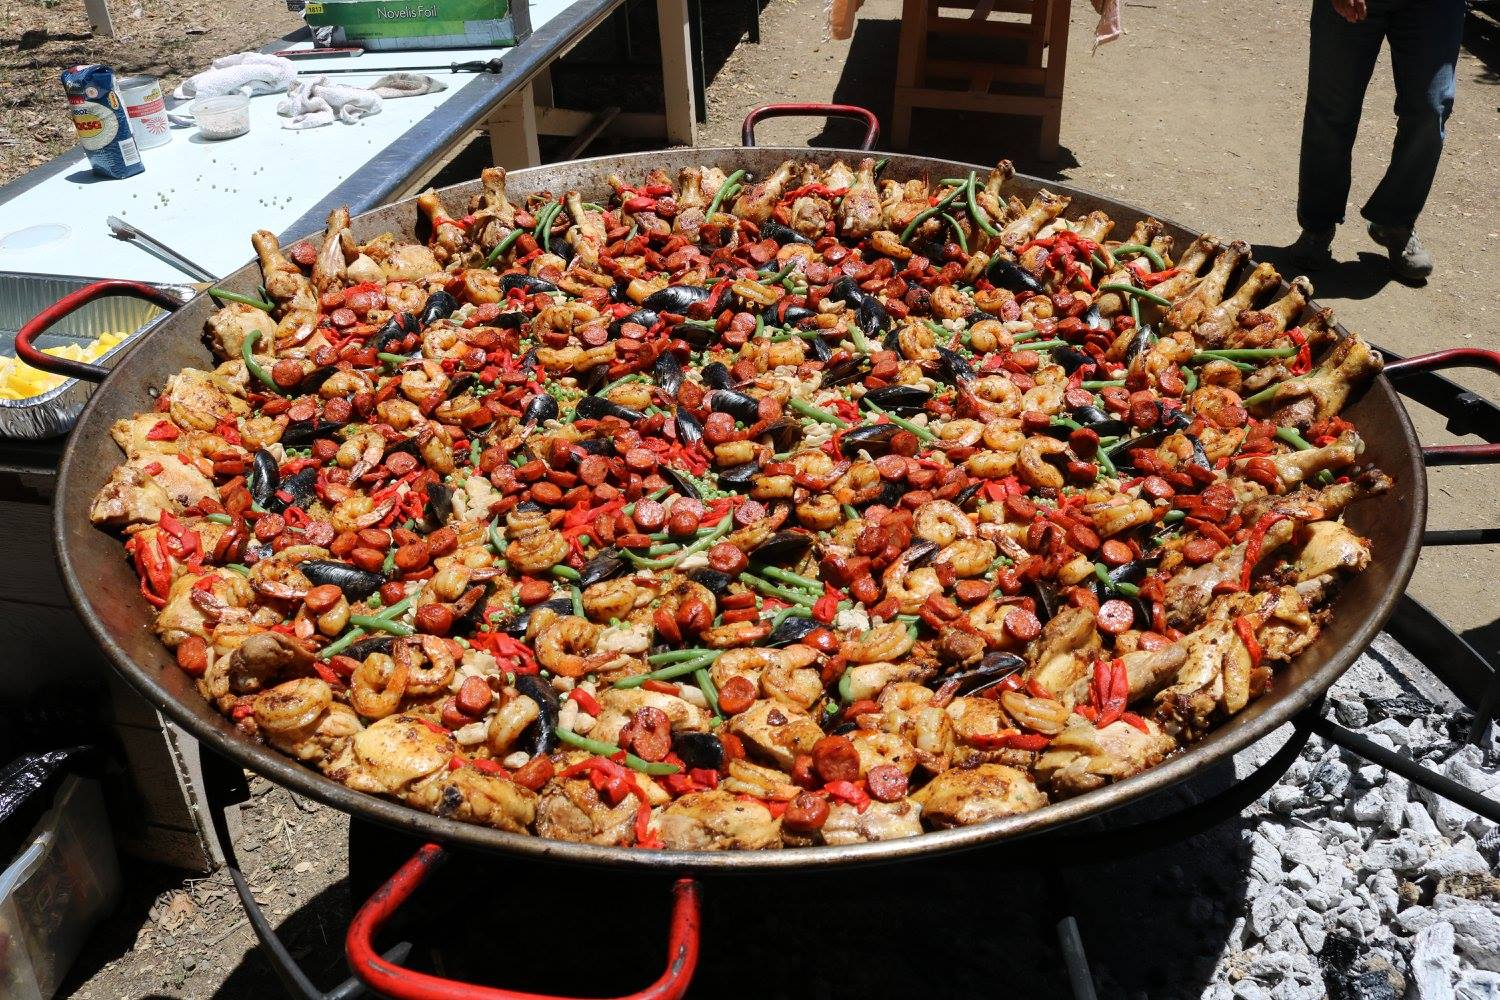 bomba-paella-catering-los-angeles13.jpg